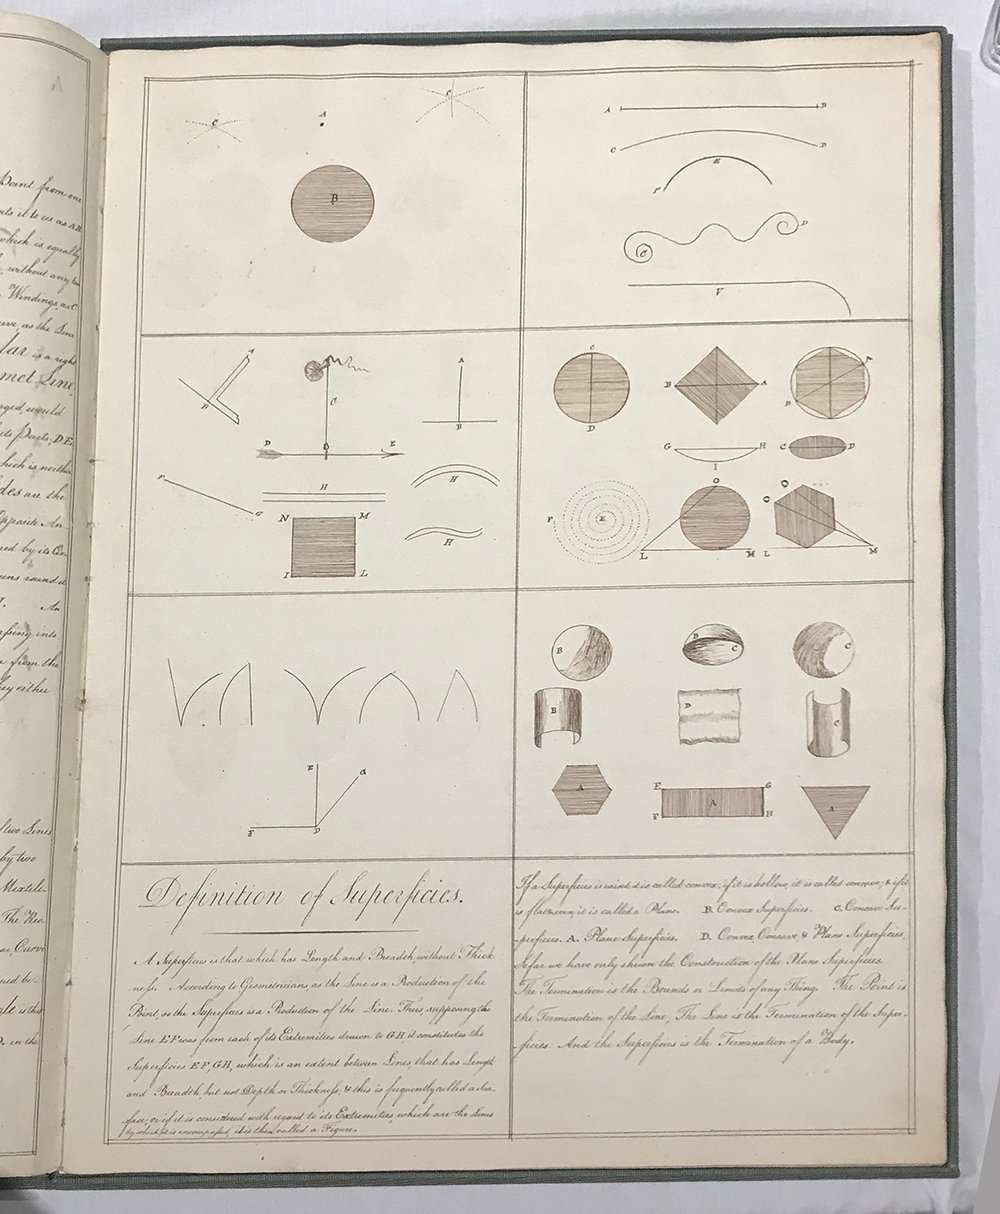 Illustrations from Lydia Bishop manuscript, The Abbey Studio